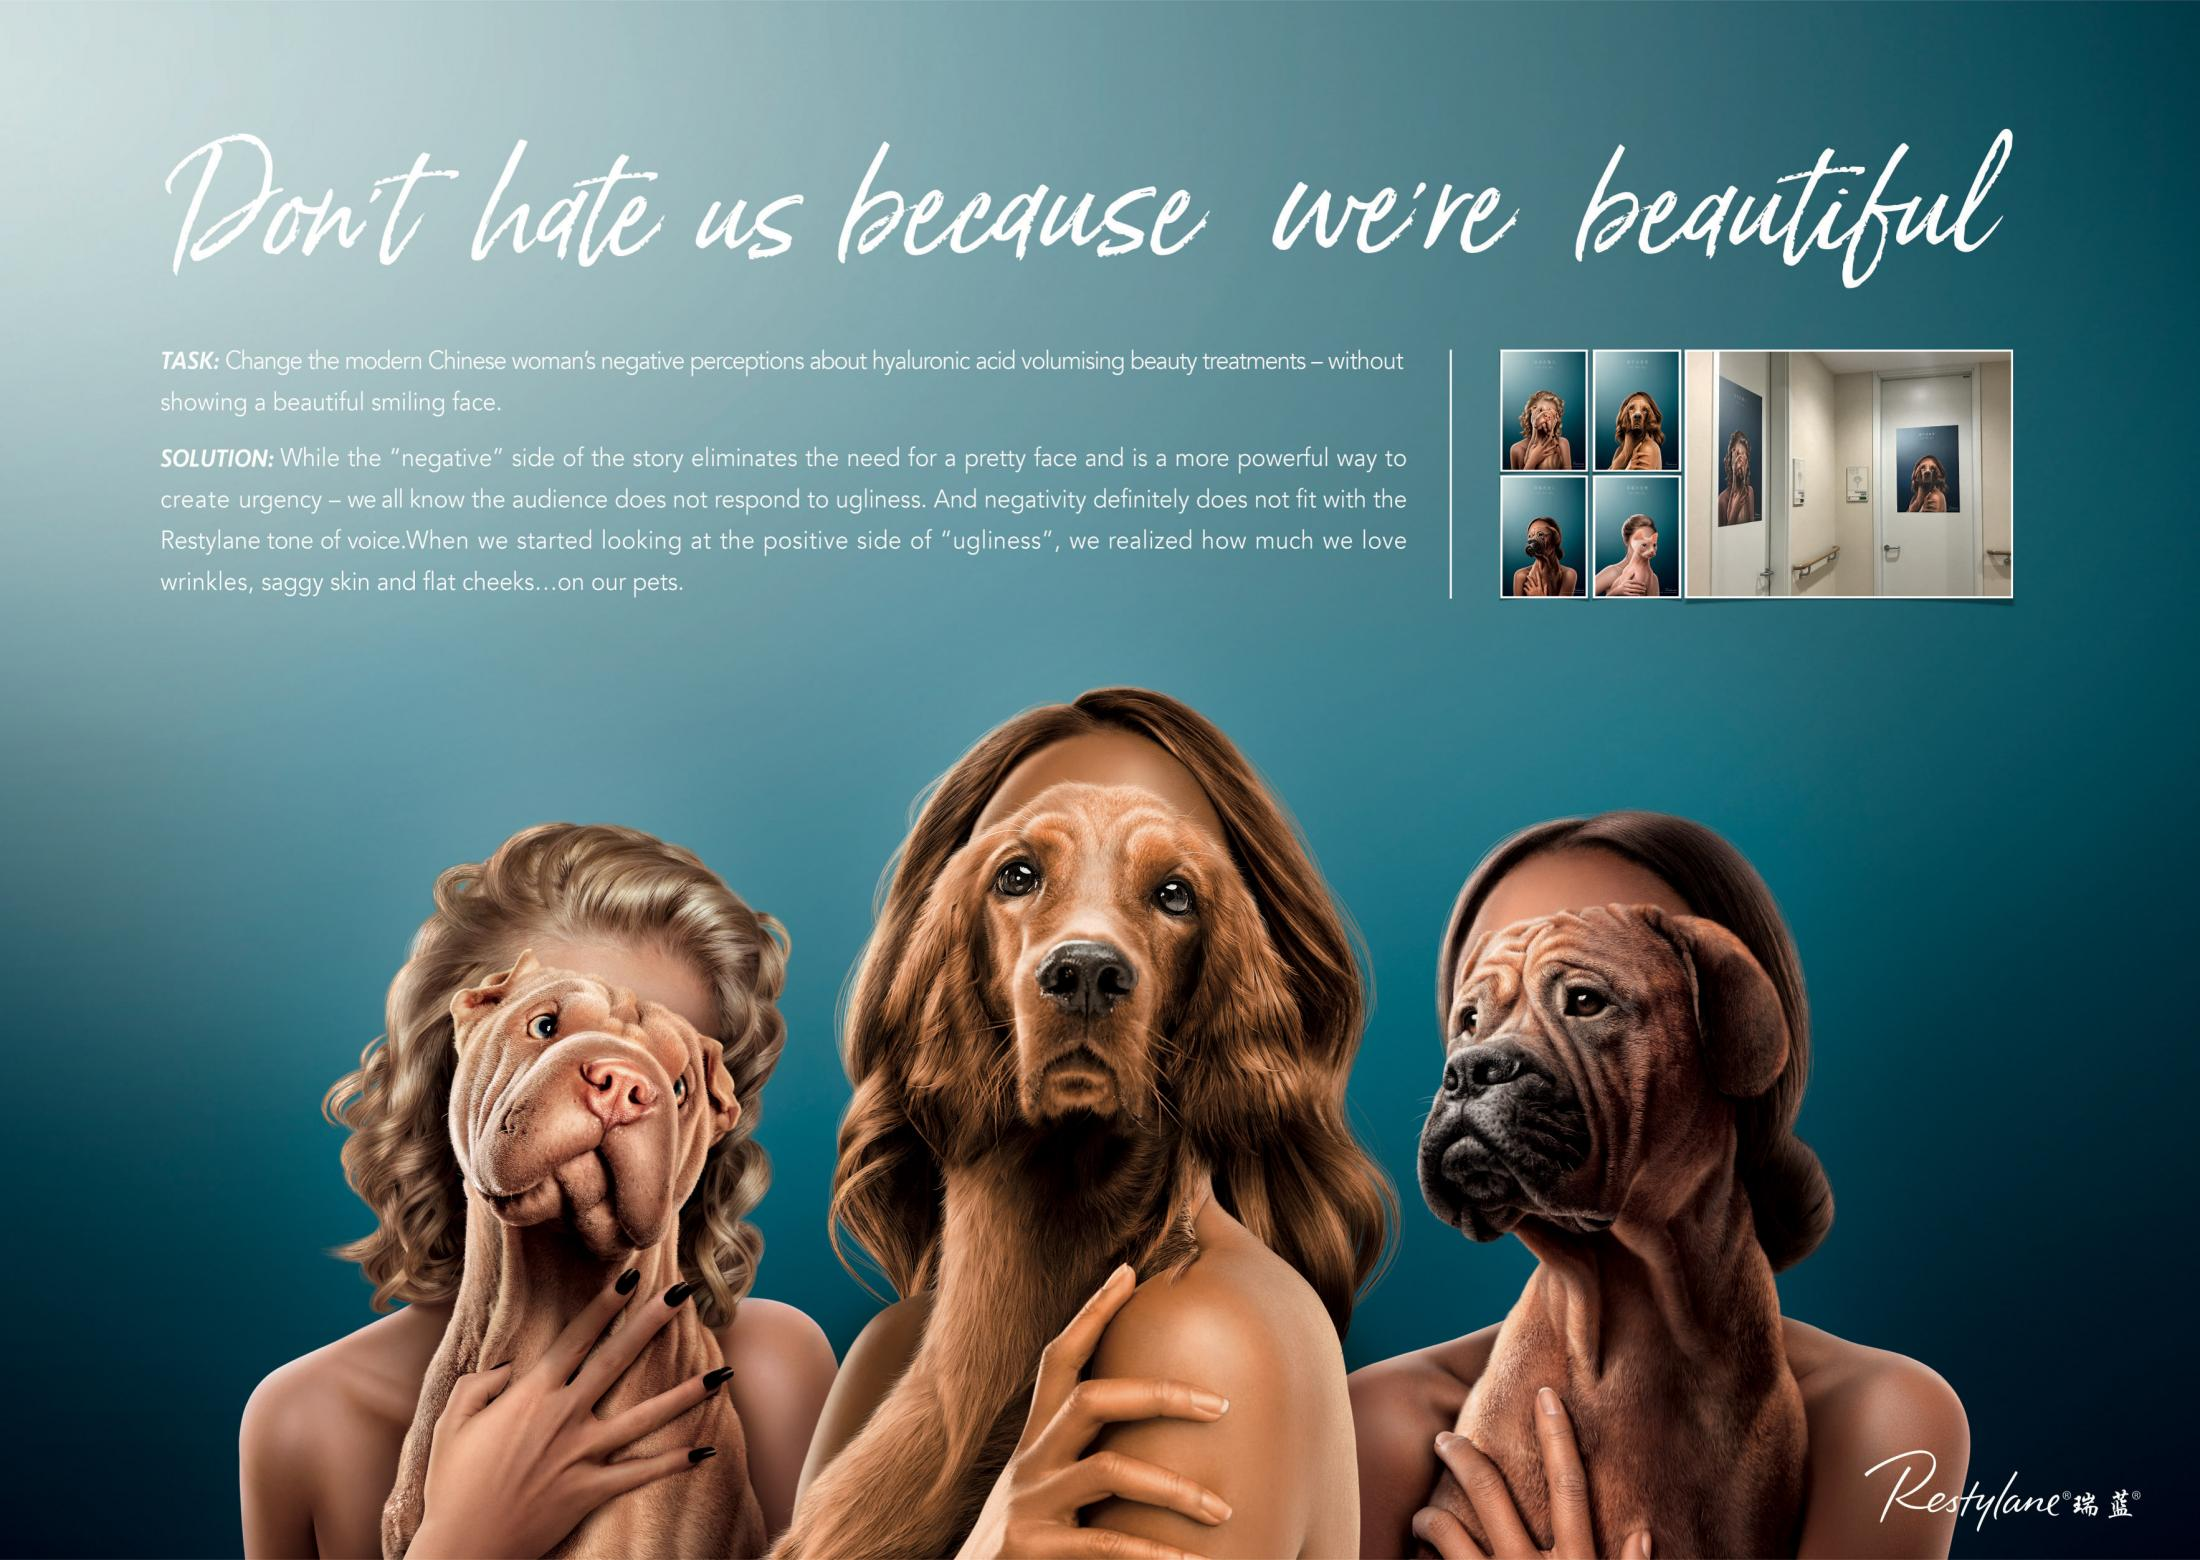 Restylane Print Ad - Good on me, Not on you, 1